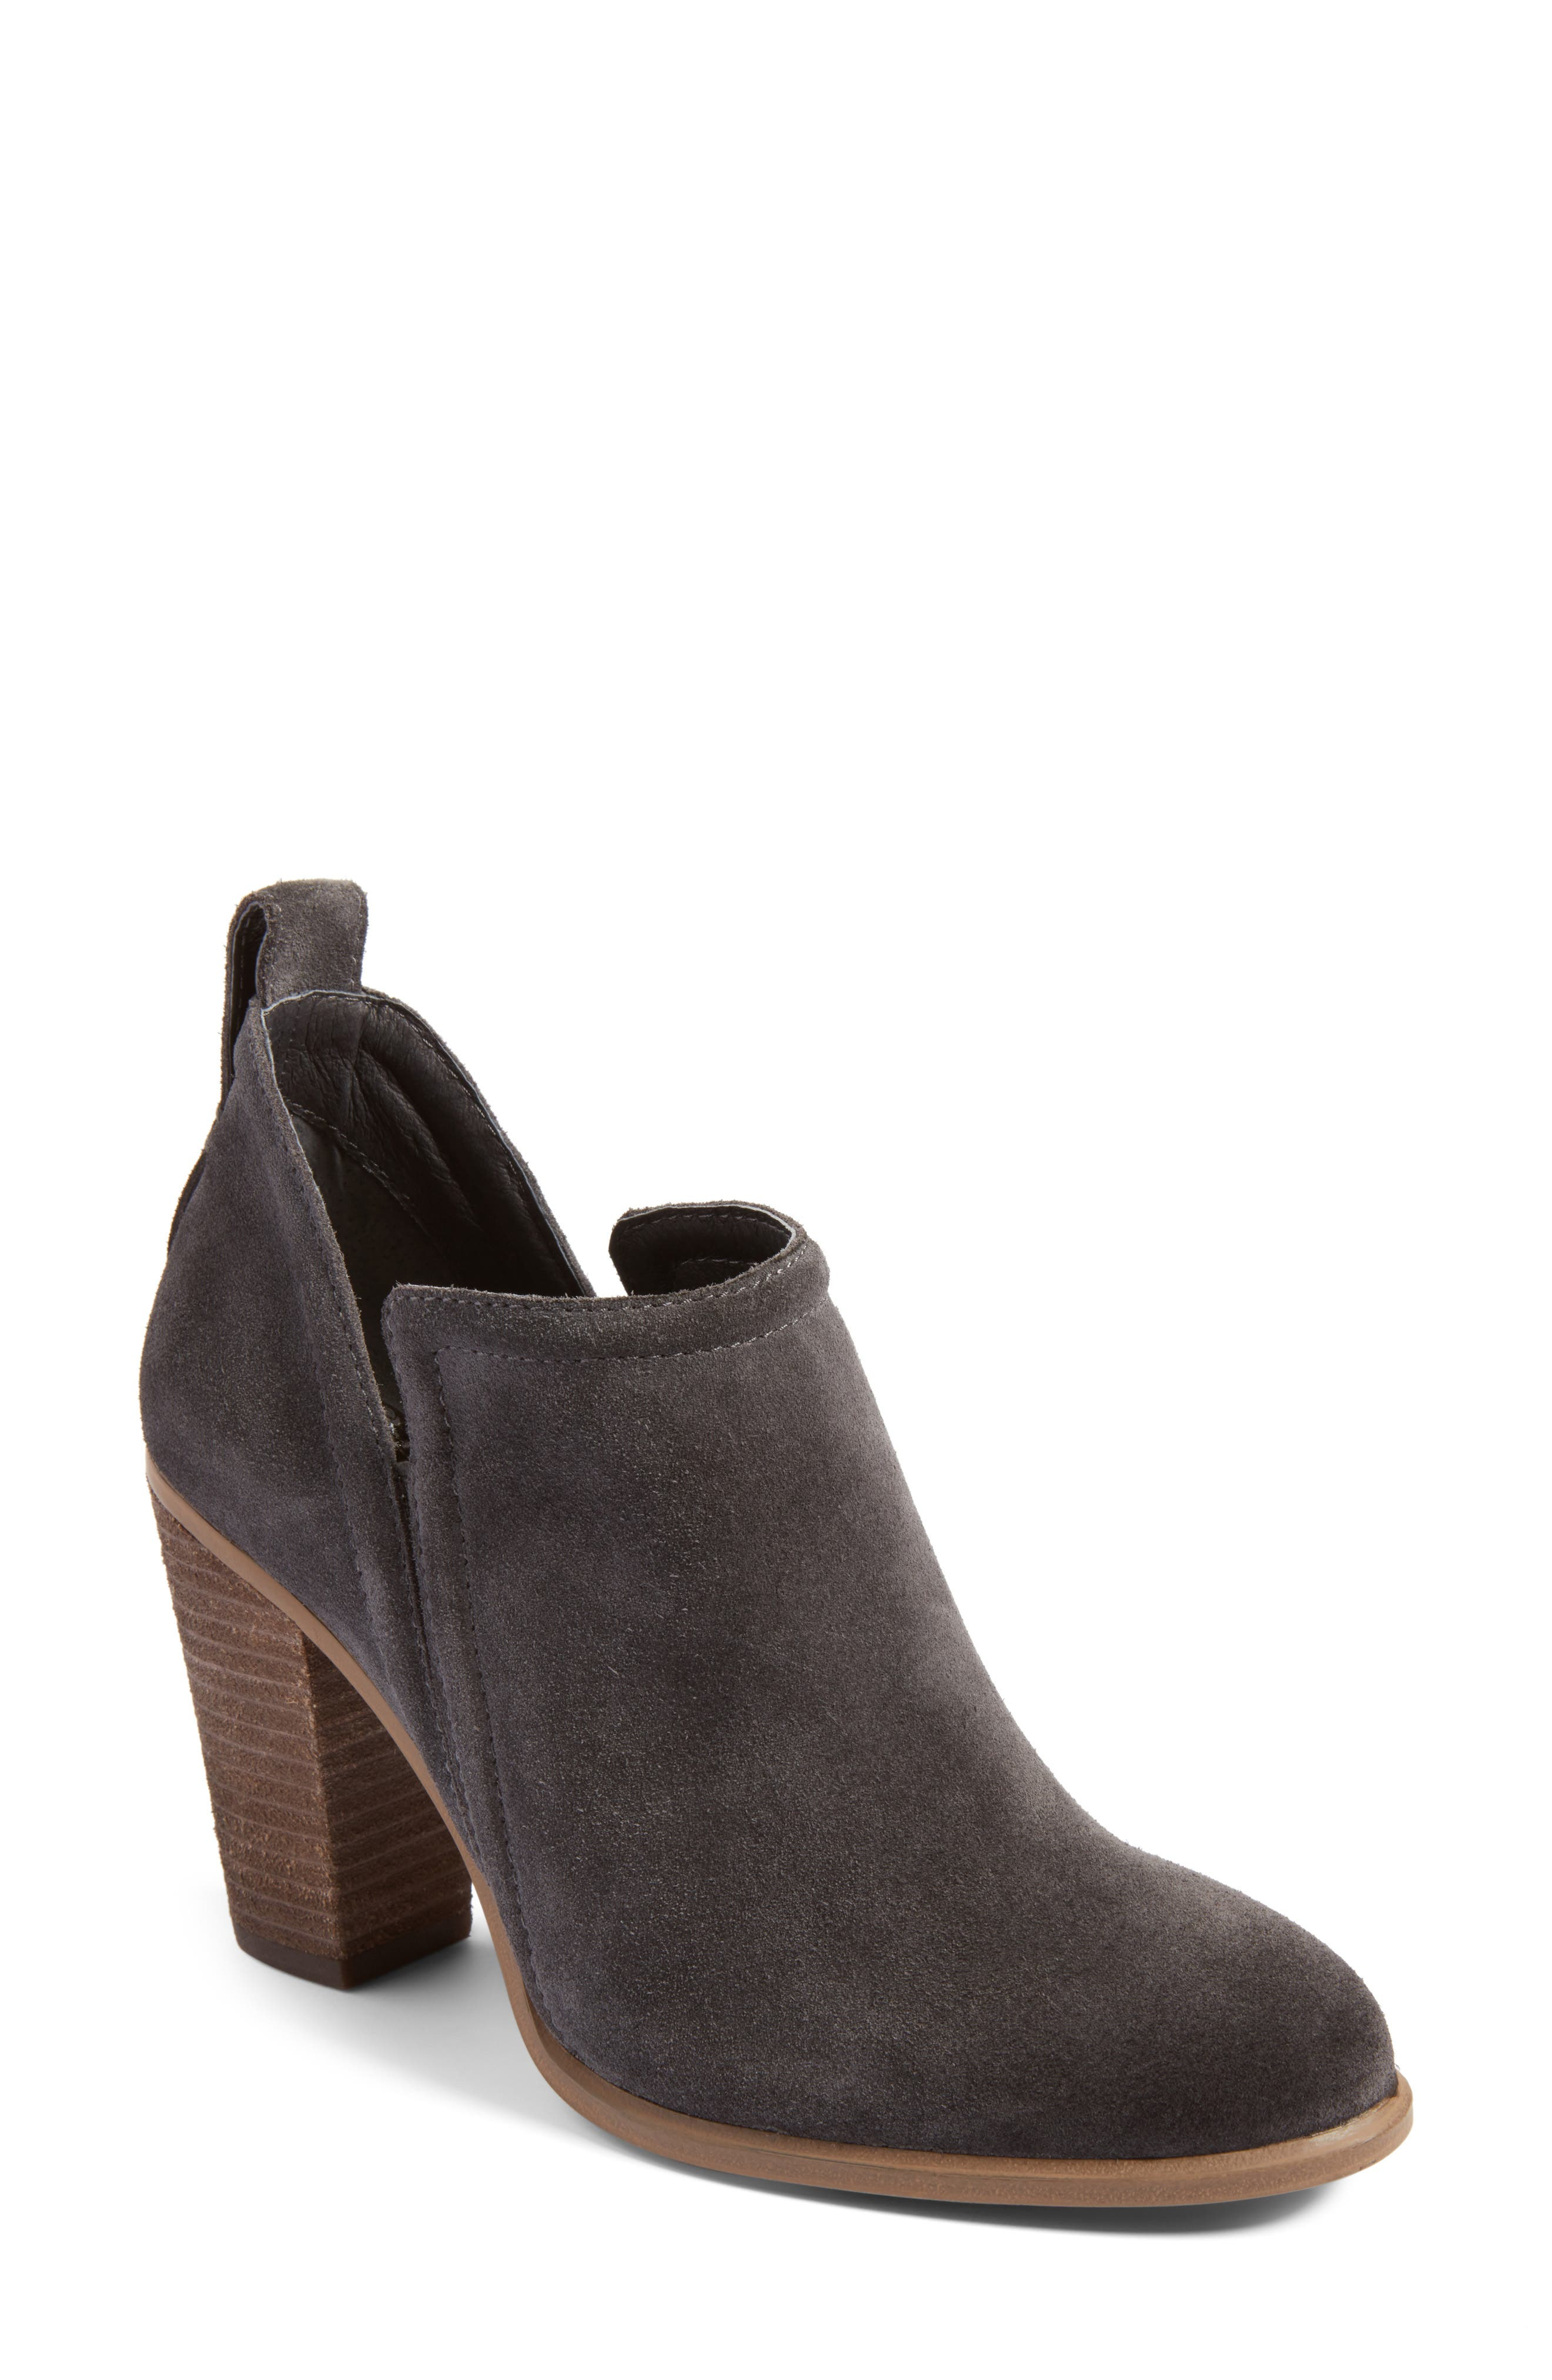 Francia Bootie,                         Main,                         color, Granite Peak